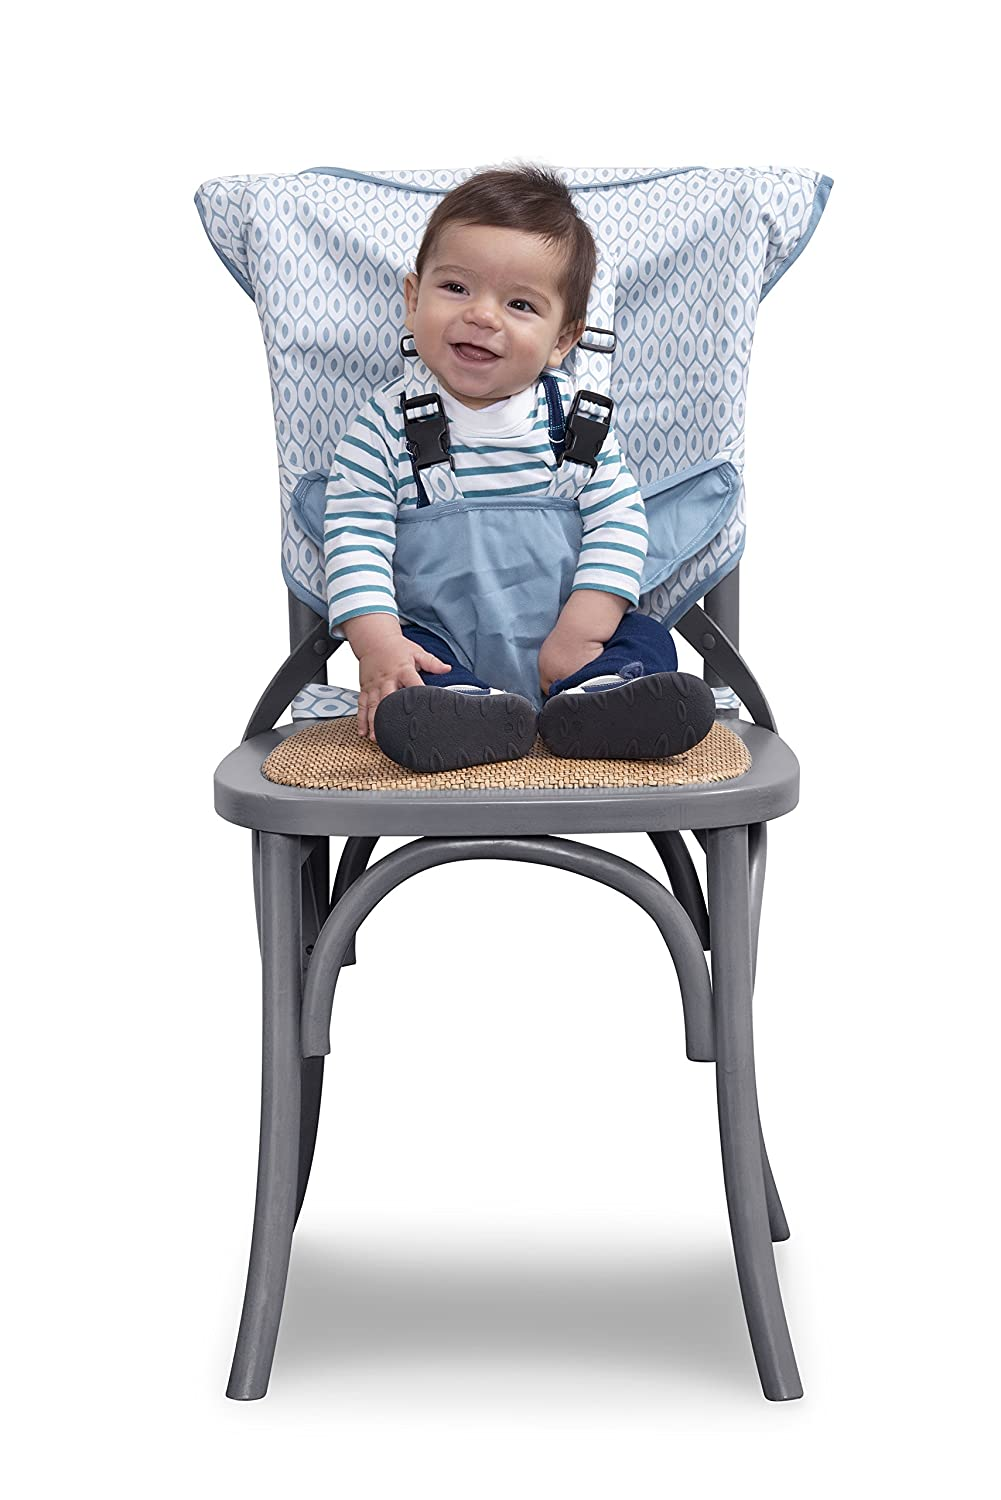 Mint Marshmallow Travel Seat, Blue Mint Marshamallow MIM102